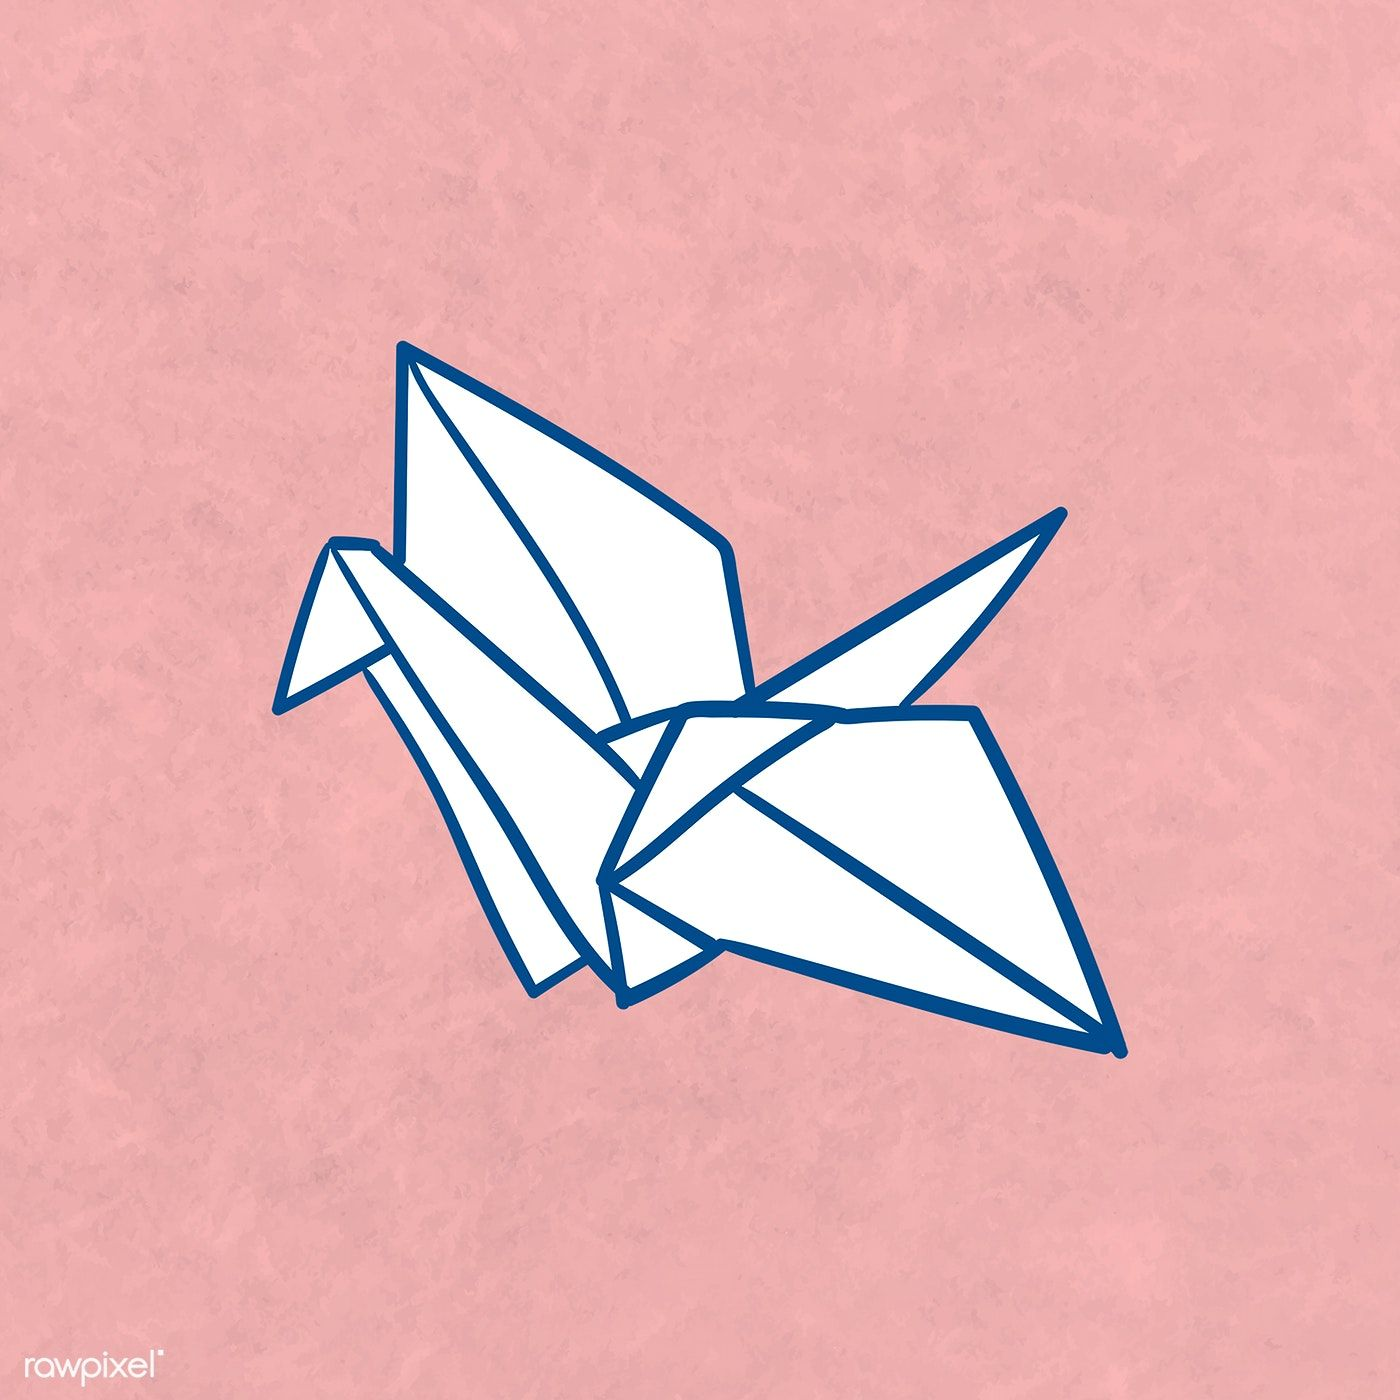 Photo of Download free illustration of Origami paper crane template illustration